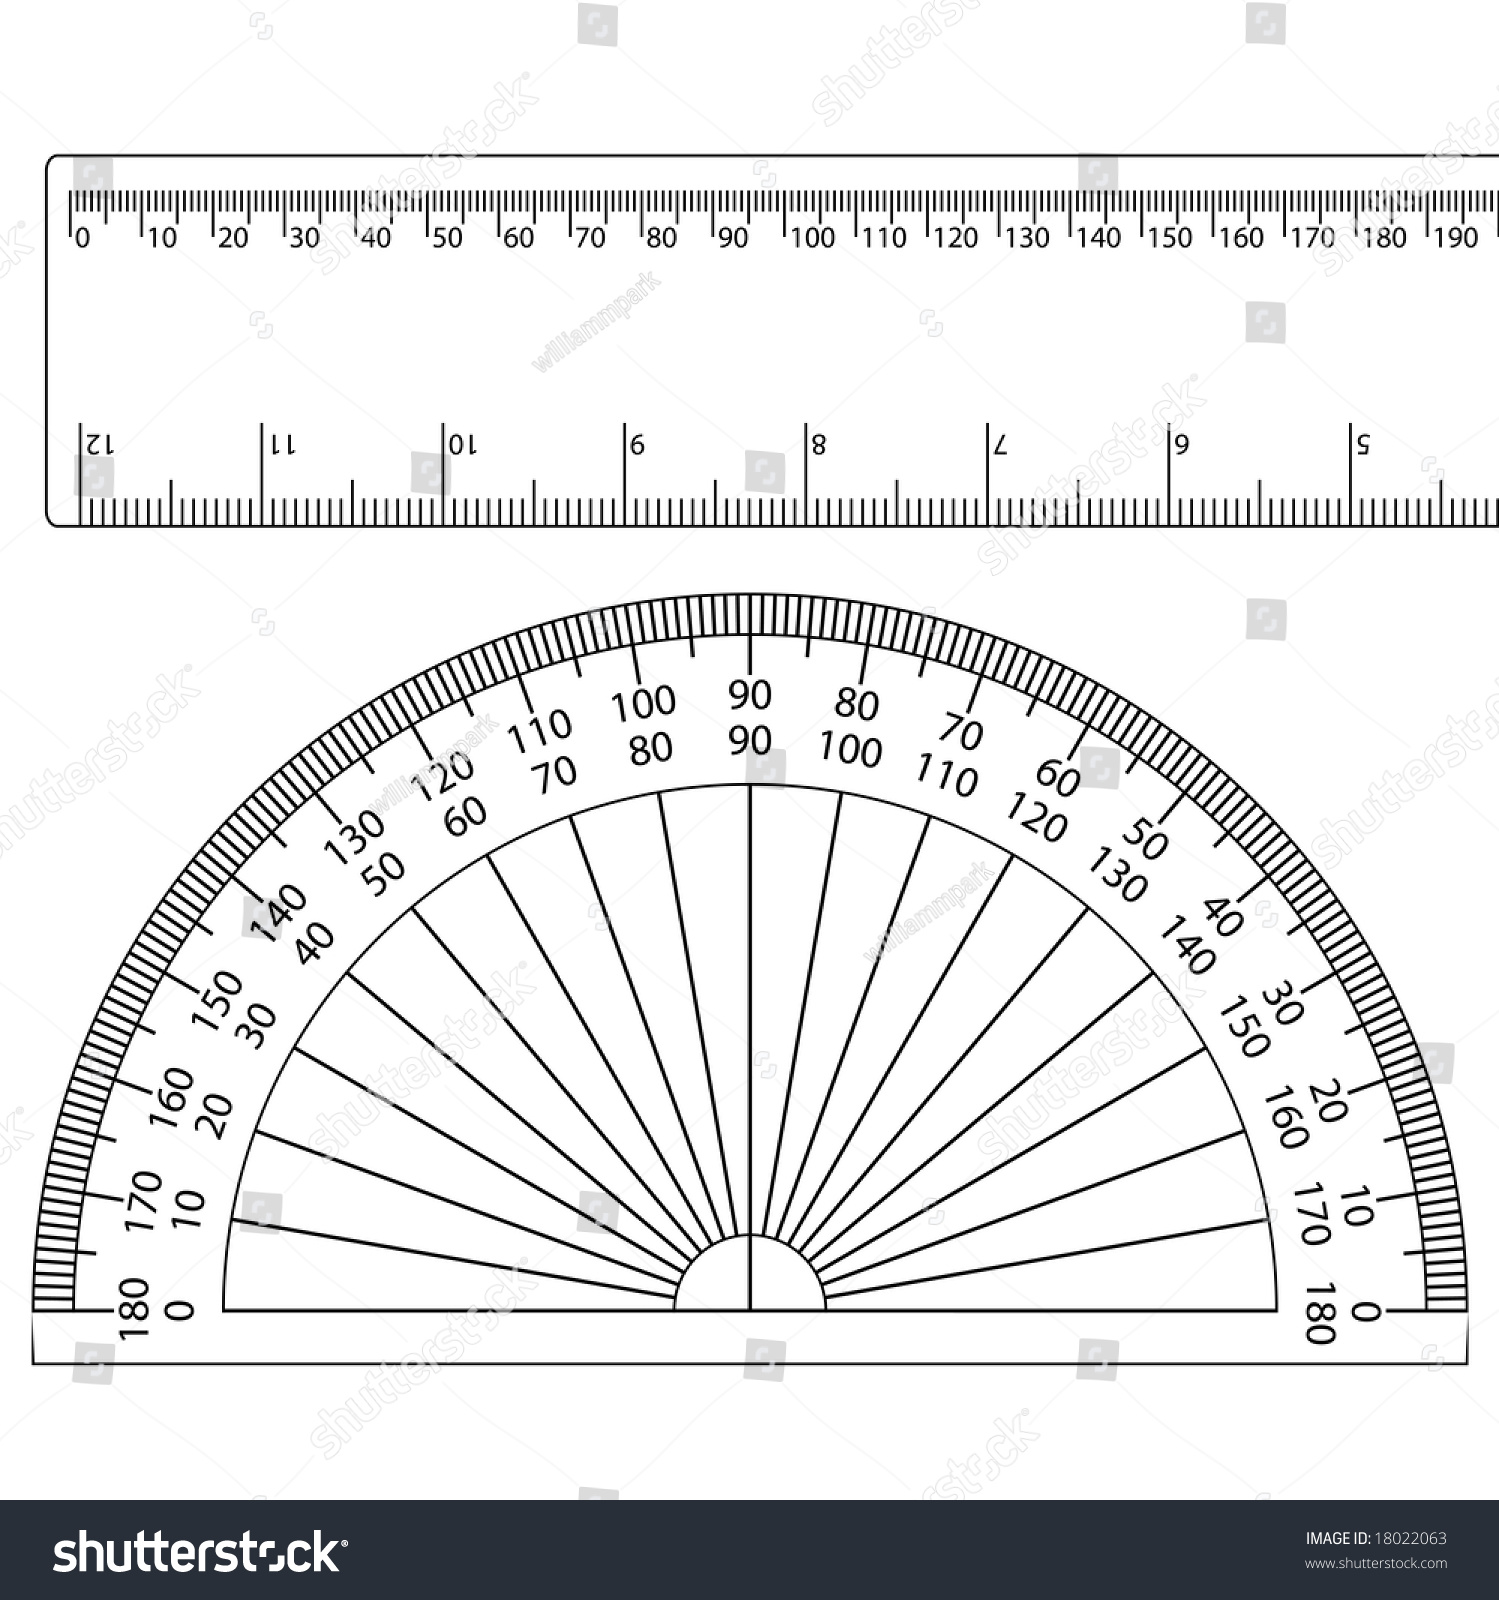 Drawing Lines With A Ruler Ks : A protractor and ruler stock vector illustration